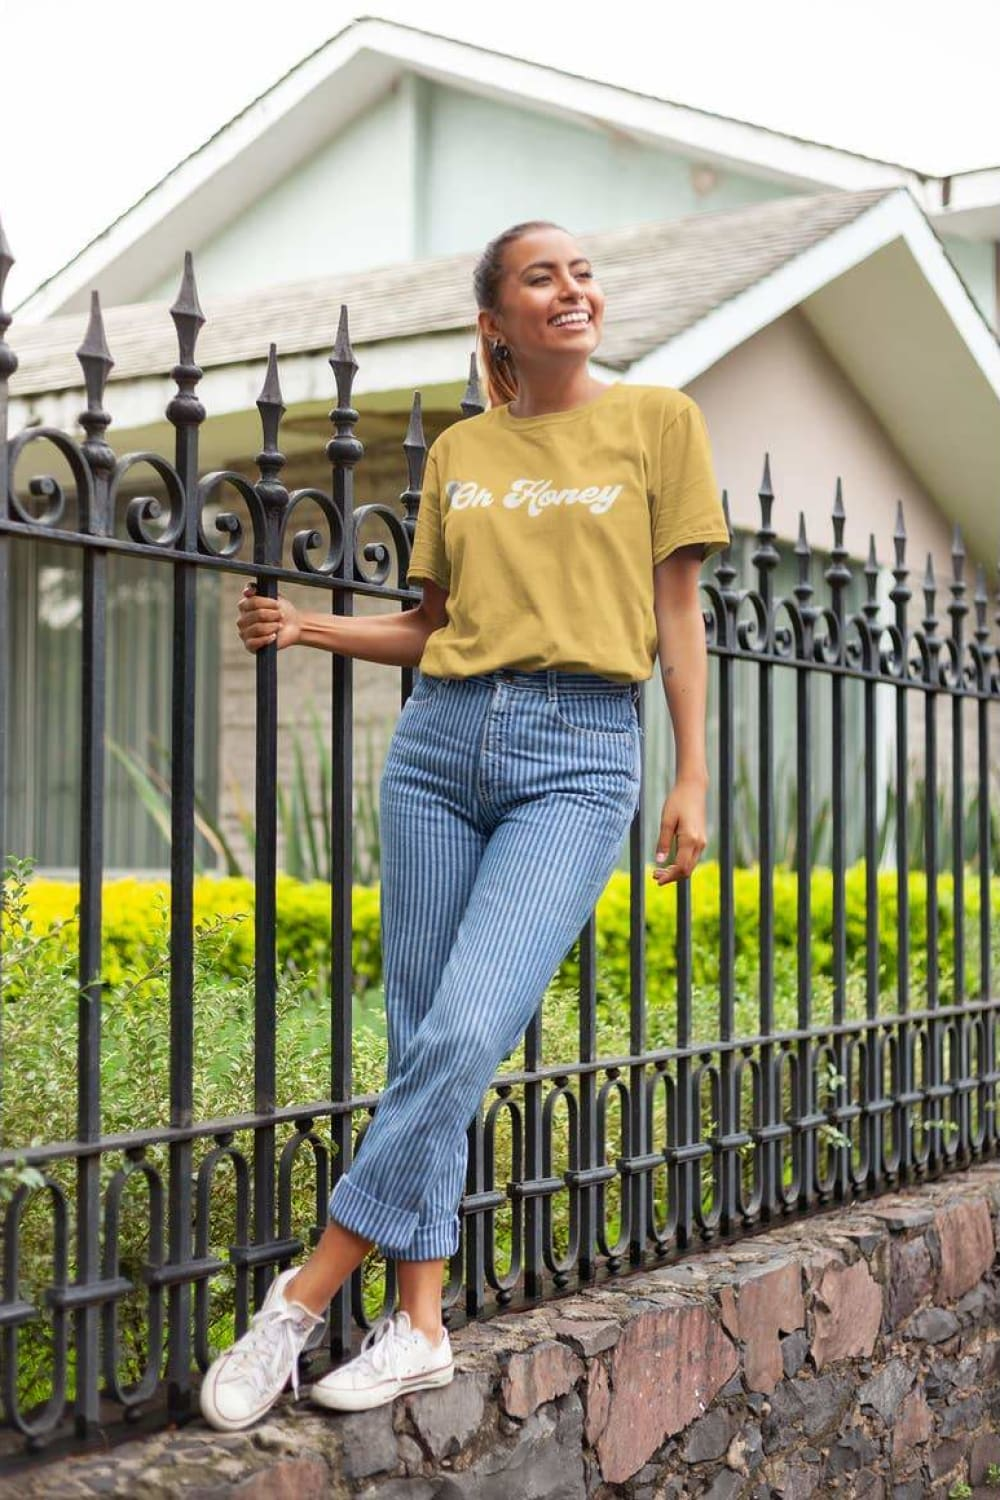 Oh Honey Graphic Tee - Graphic Tees - The Funnel Cake Tree